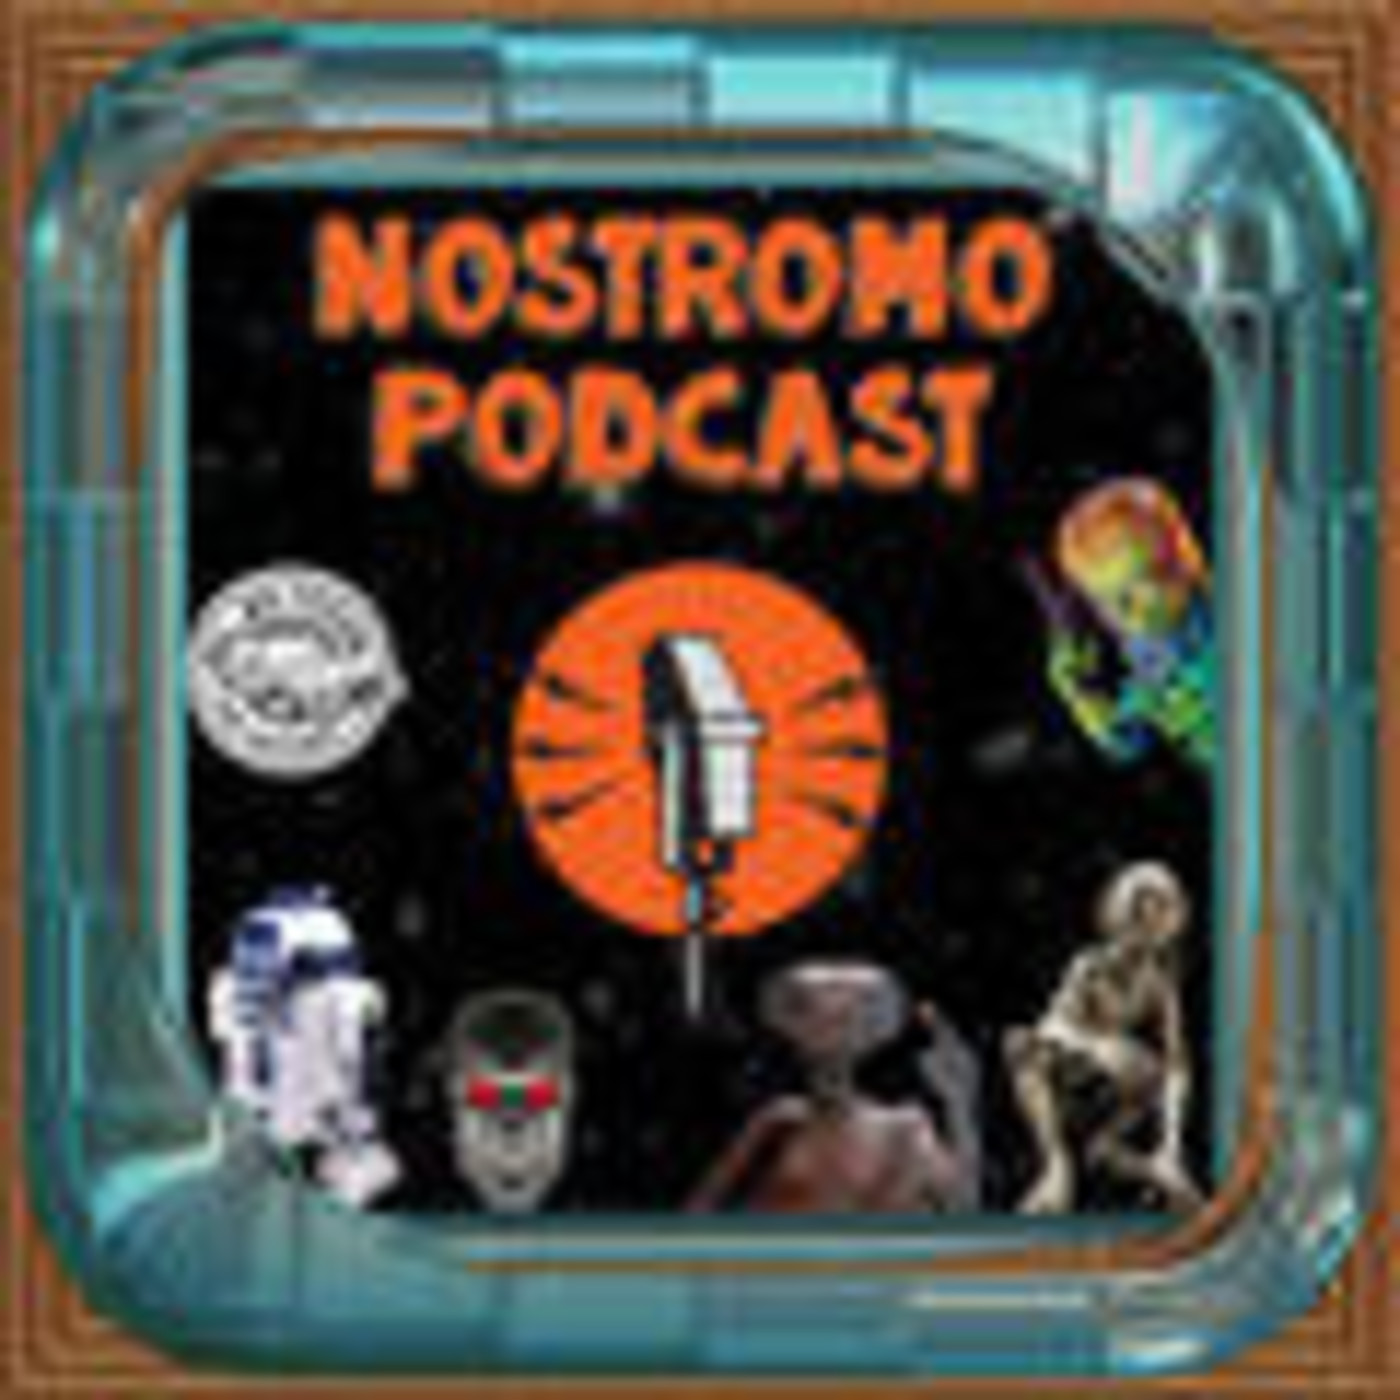 Nostromo Podcast